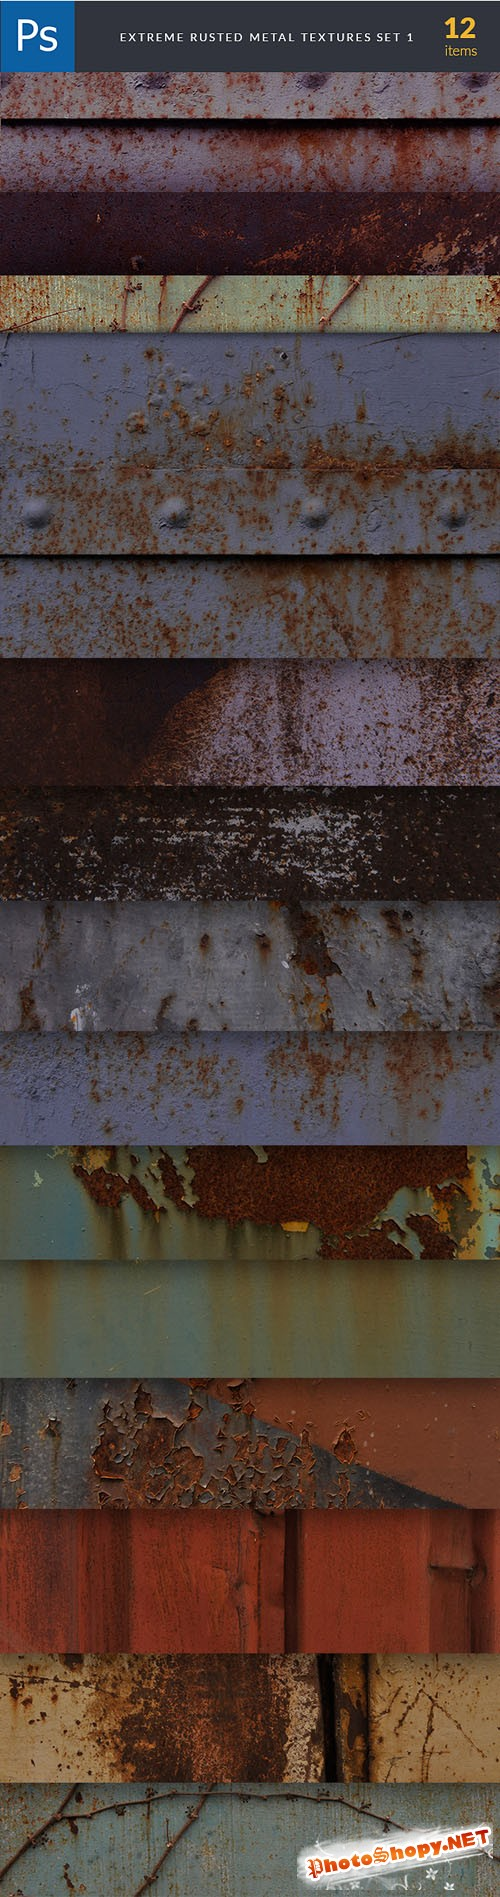 Extreme Rusted Metal Textures Set 1